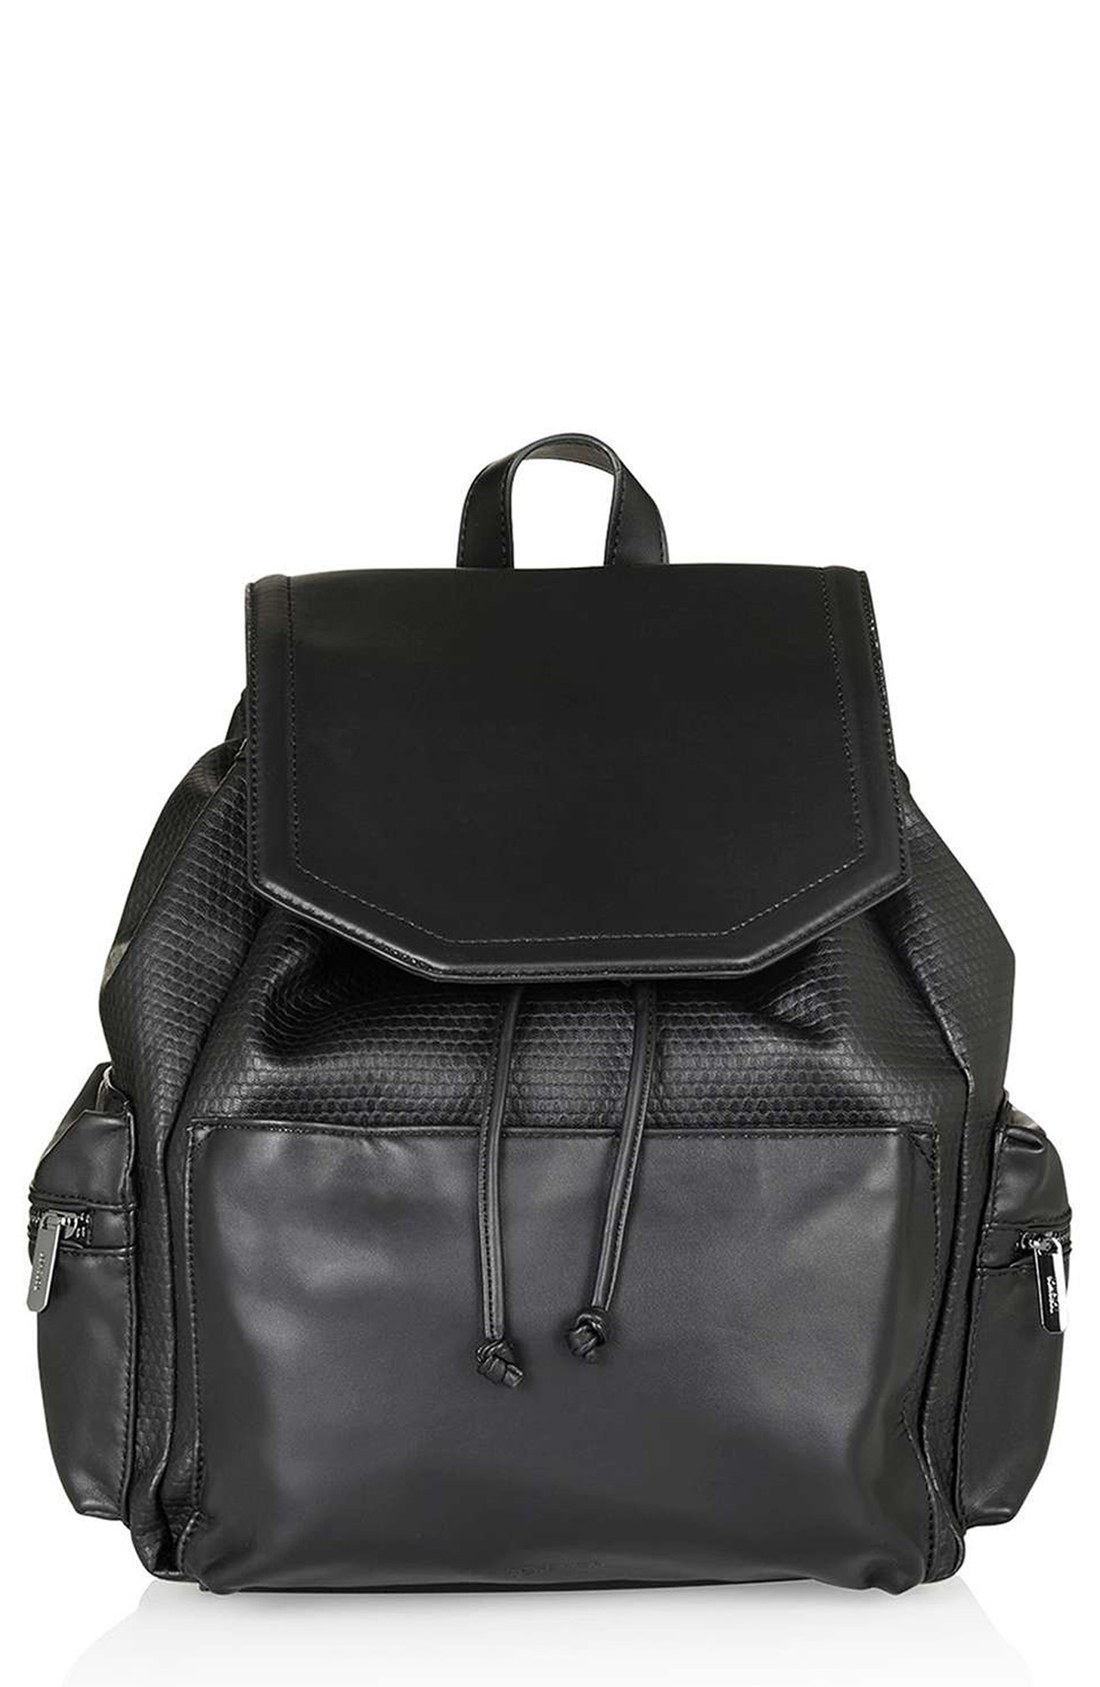 Black Leather Backpack Women 46Tz04R4